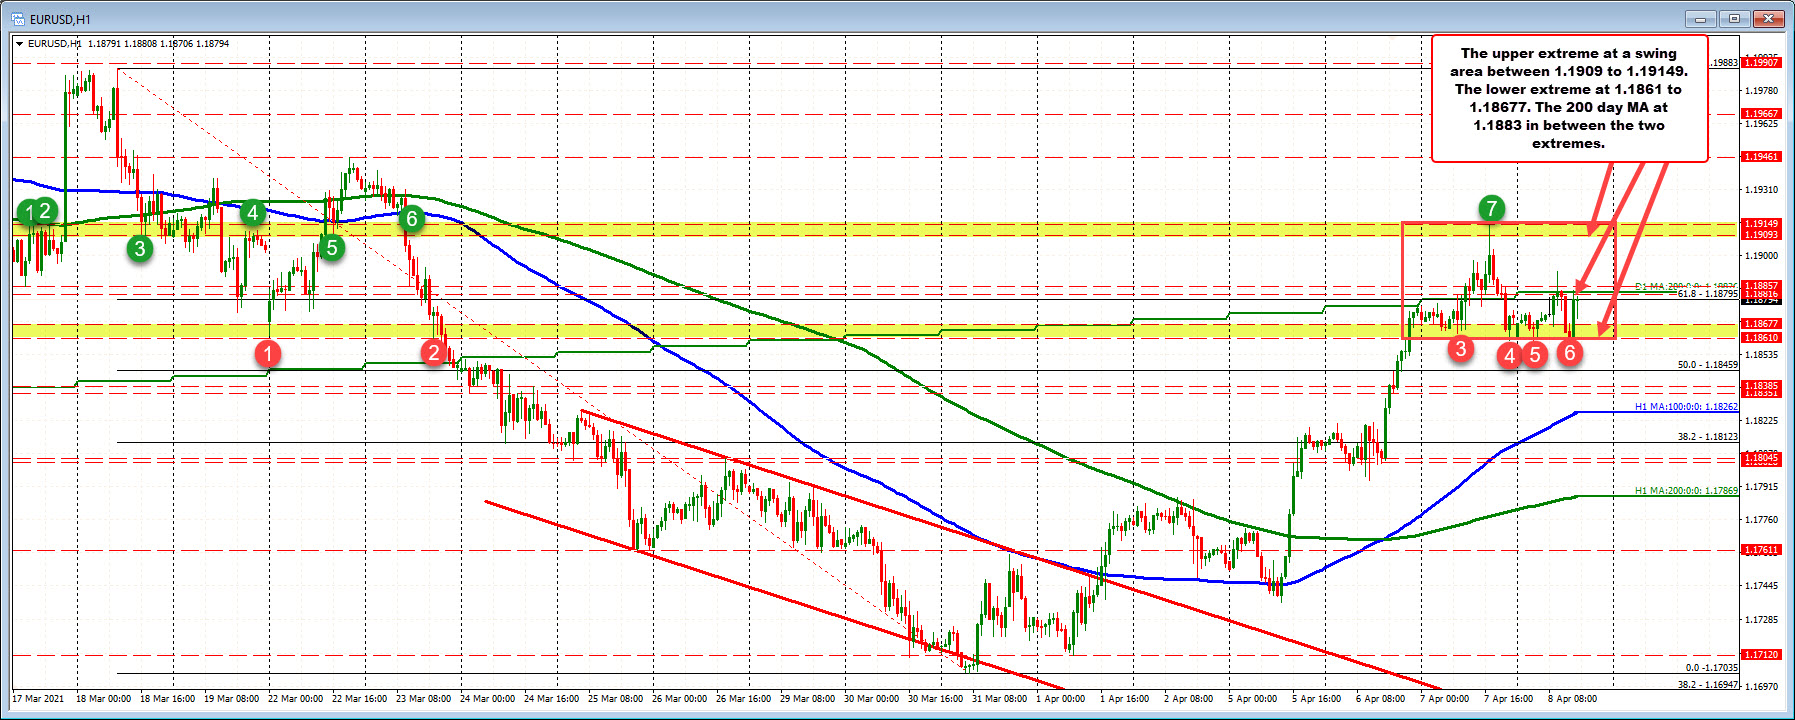 200 day MA between two swing area extremes 55 pips apart